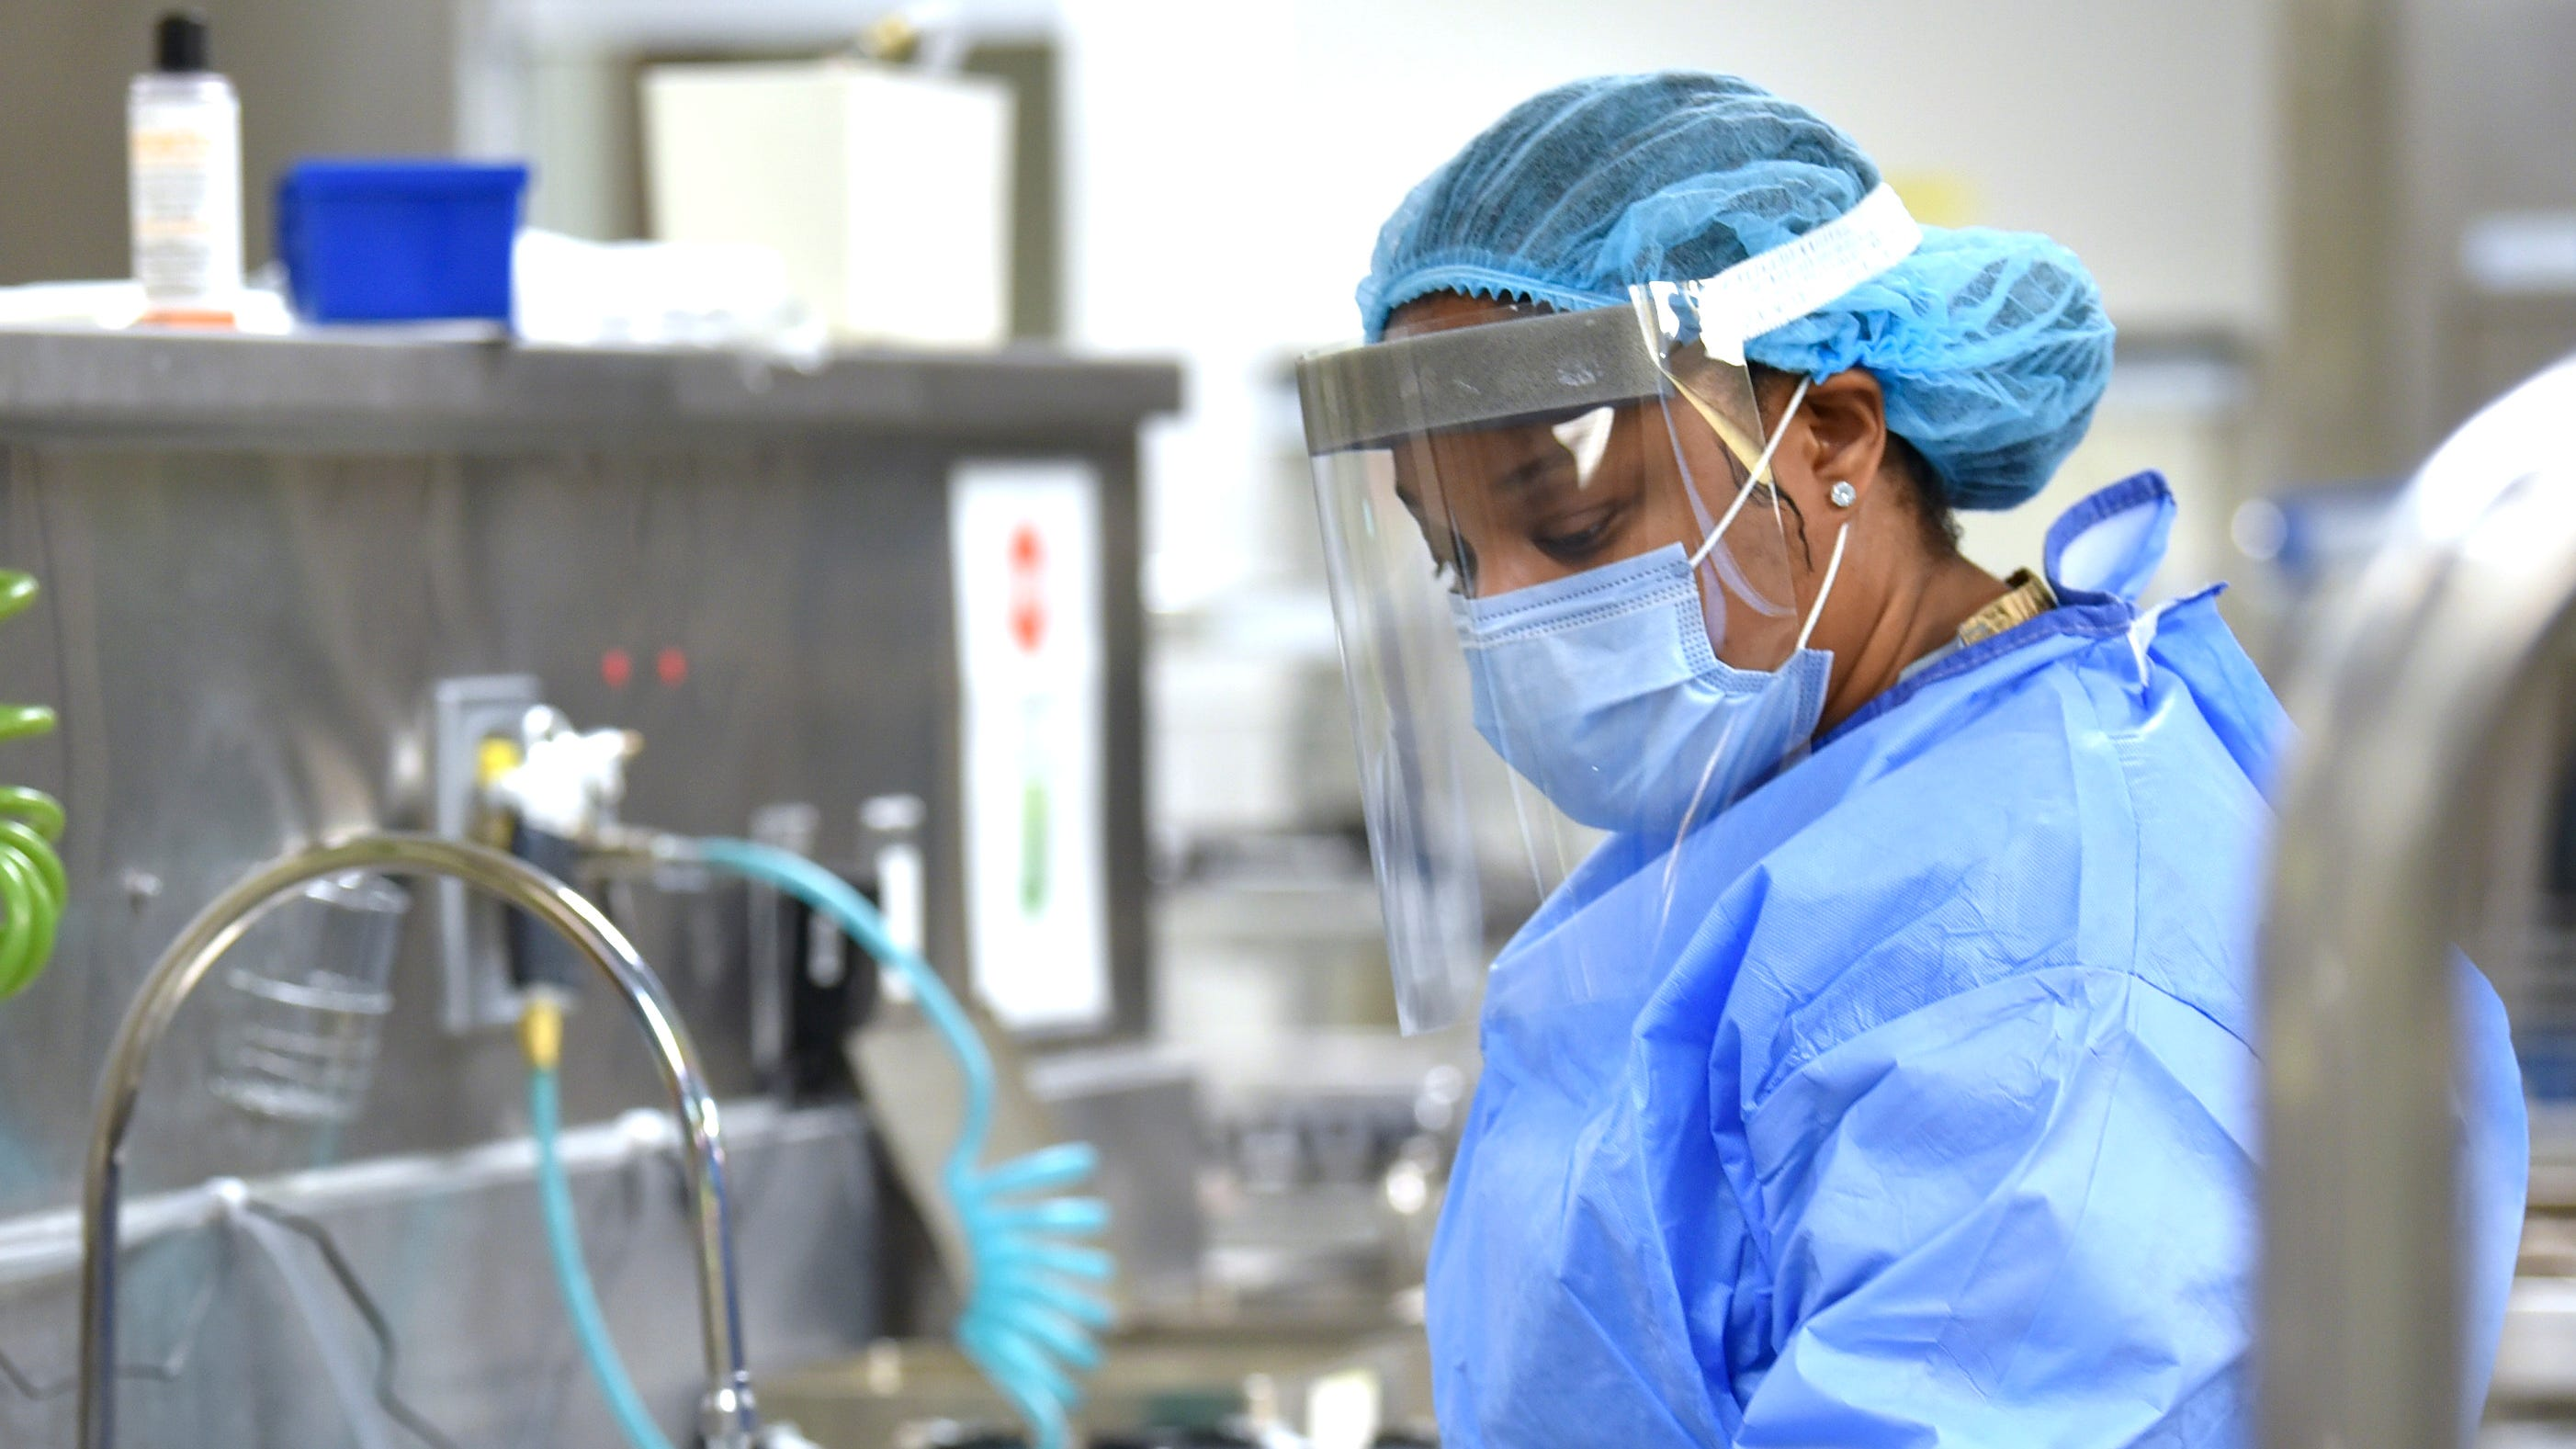 Dasha Williams, 25, of Detroit, used anew training opportunity at Beaumont Royal Oak Hospitalto advance from being a nurse assistant to a higher-paying job cleaning surgical instruments.